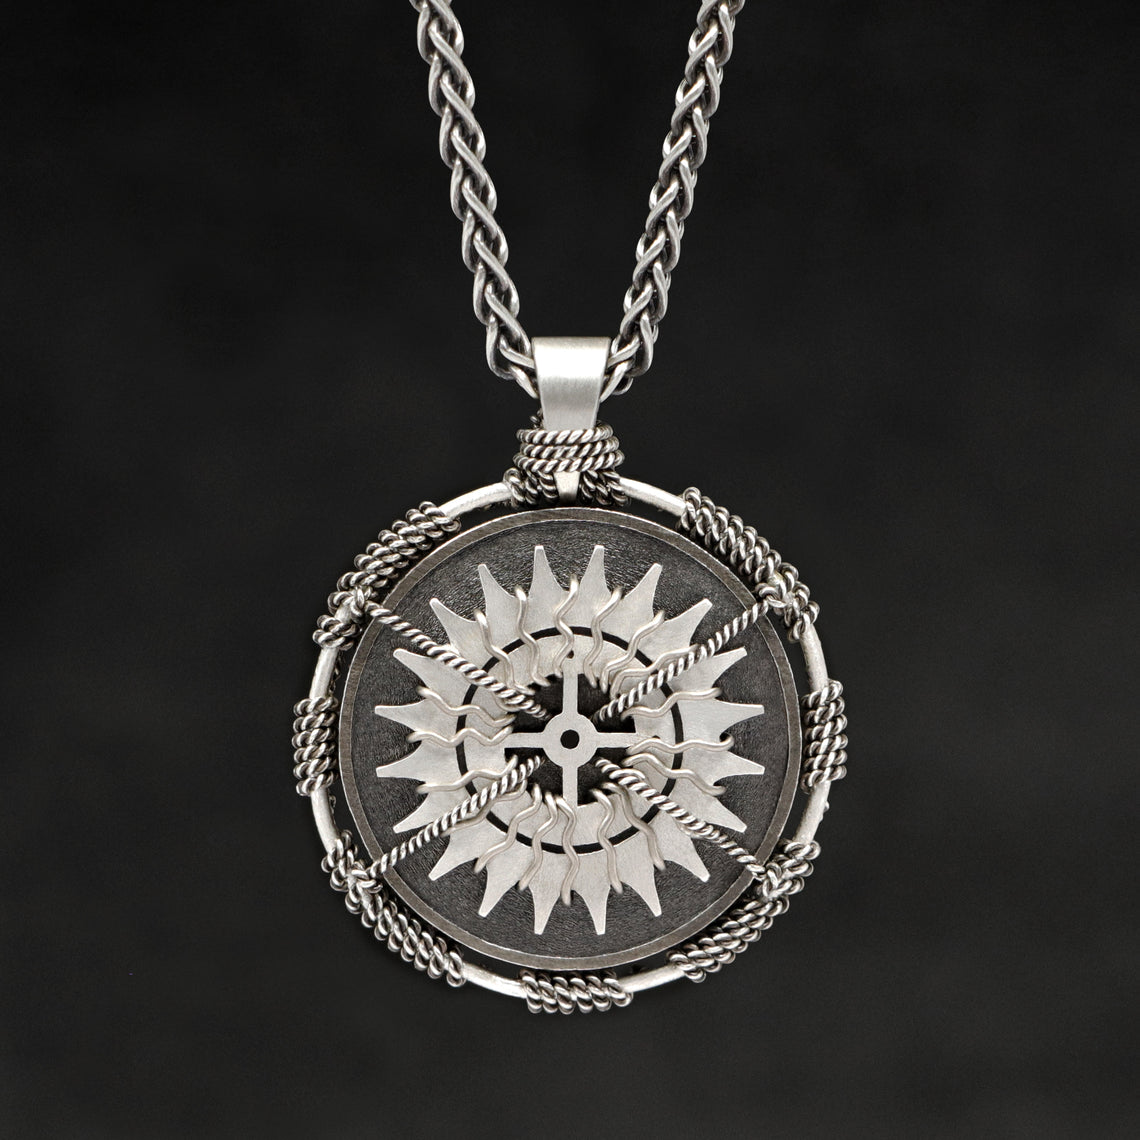 Hanging front view of Sterling Silver and 18K Palladium White Gold Accents Sewn Silver Metal Compass pendant and chain with endless loop necklace featuring 20 pointed gear by Caps Brothers